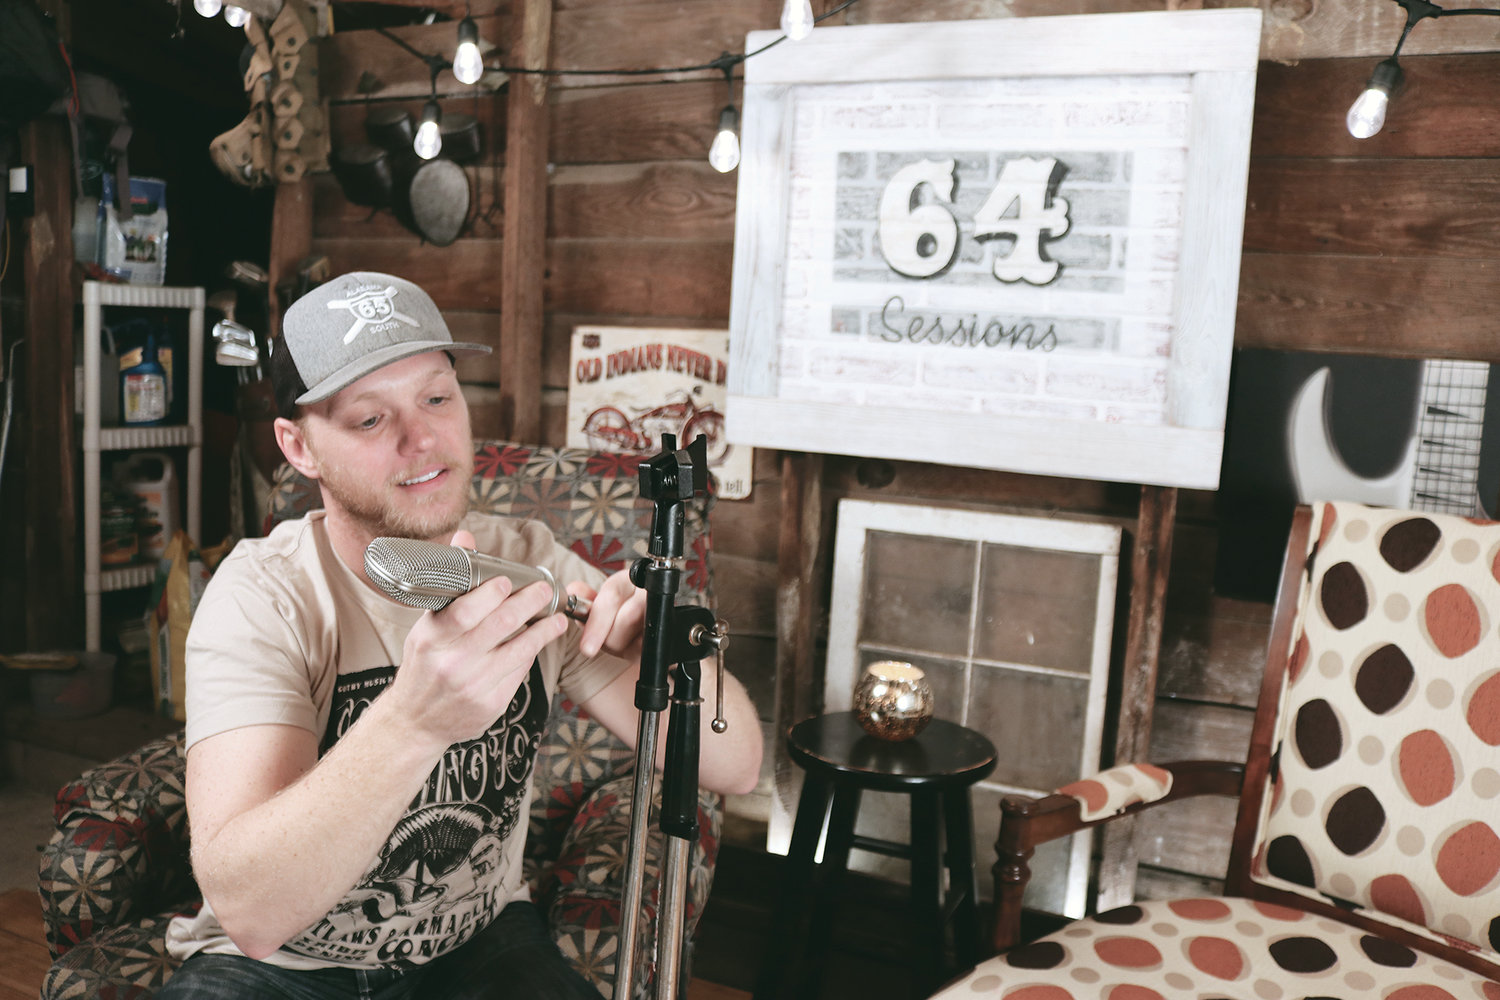 Cody Lockhart of Dora prepares the set for an interview on his 64 Sessions YouTube Channel. New segments are released on Mondays.